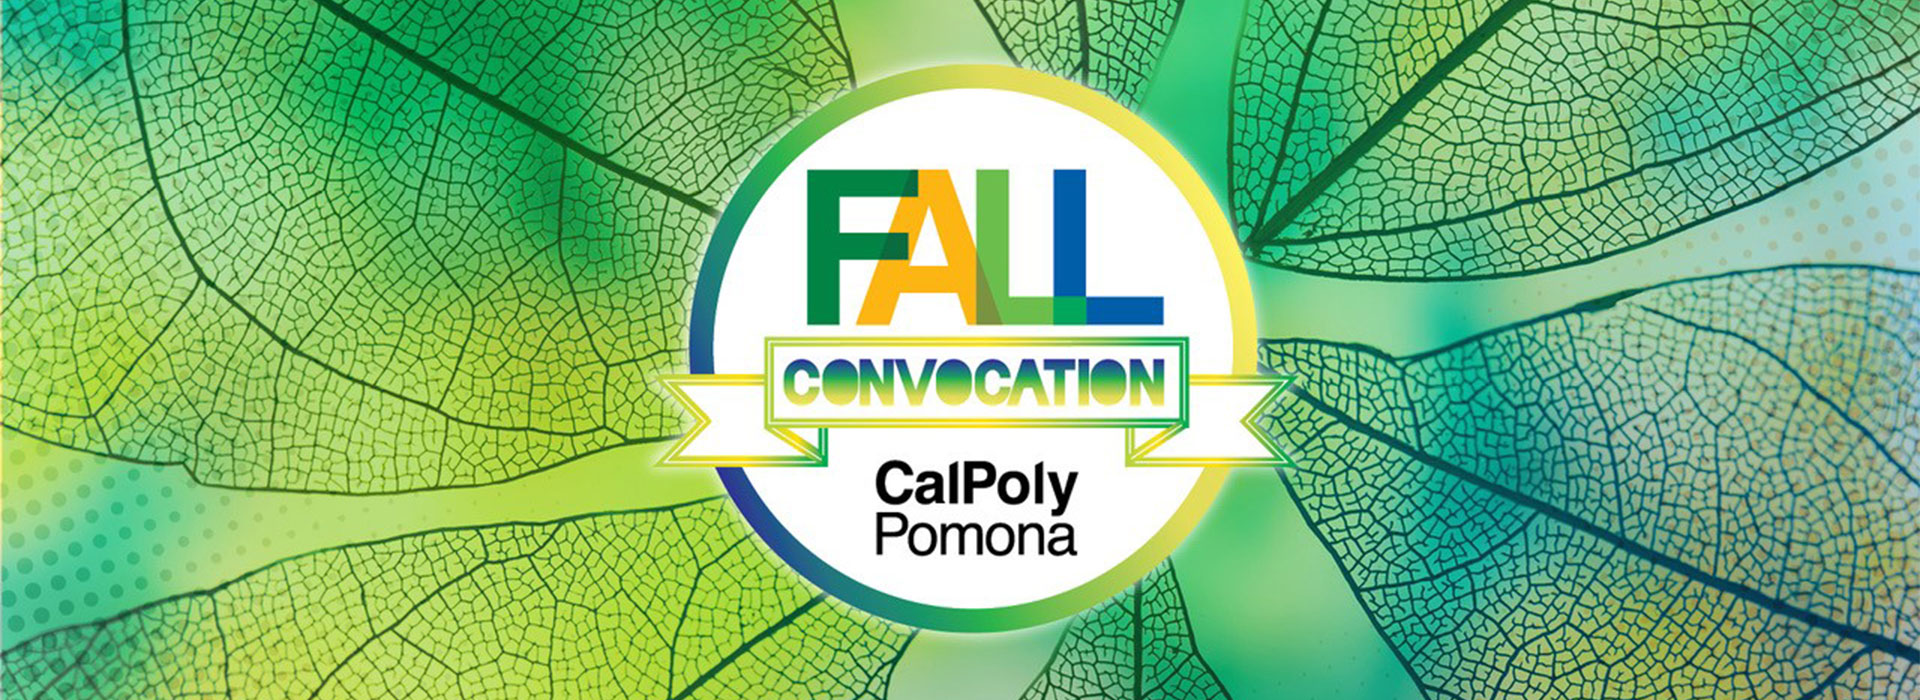 the Fall conference logo against stylized green leaves